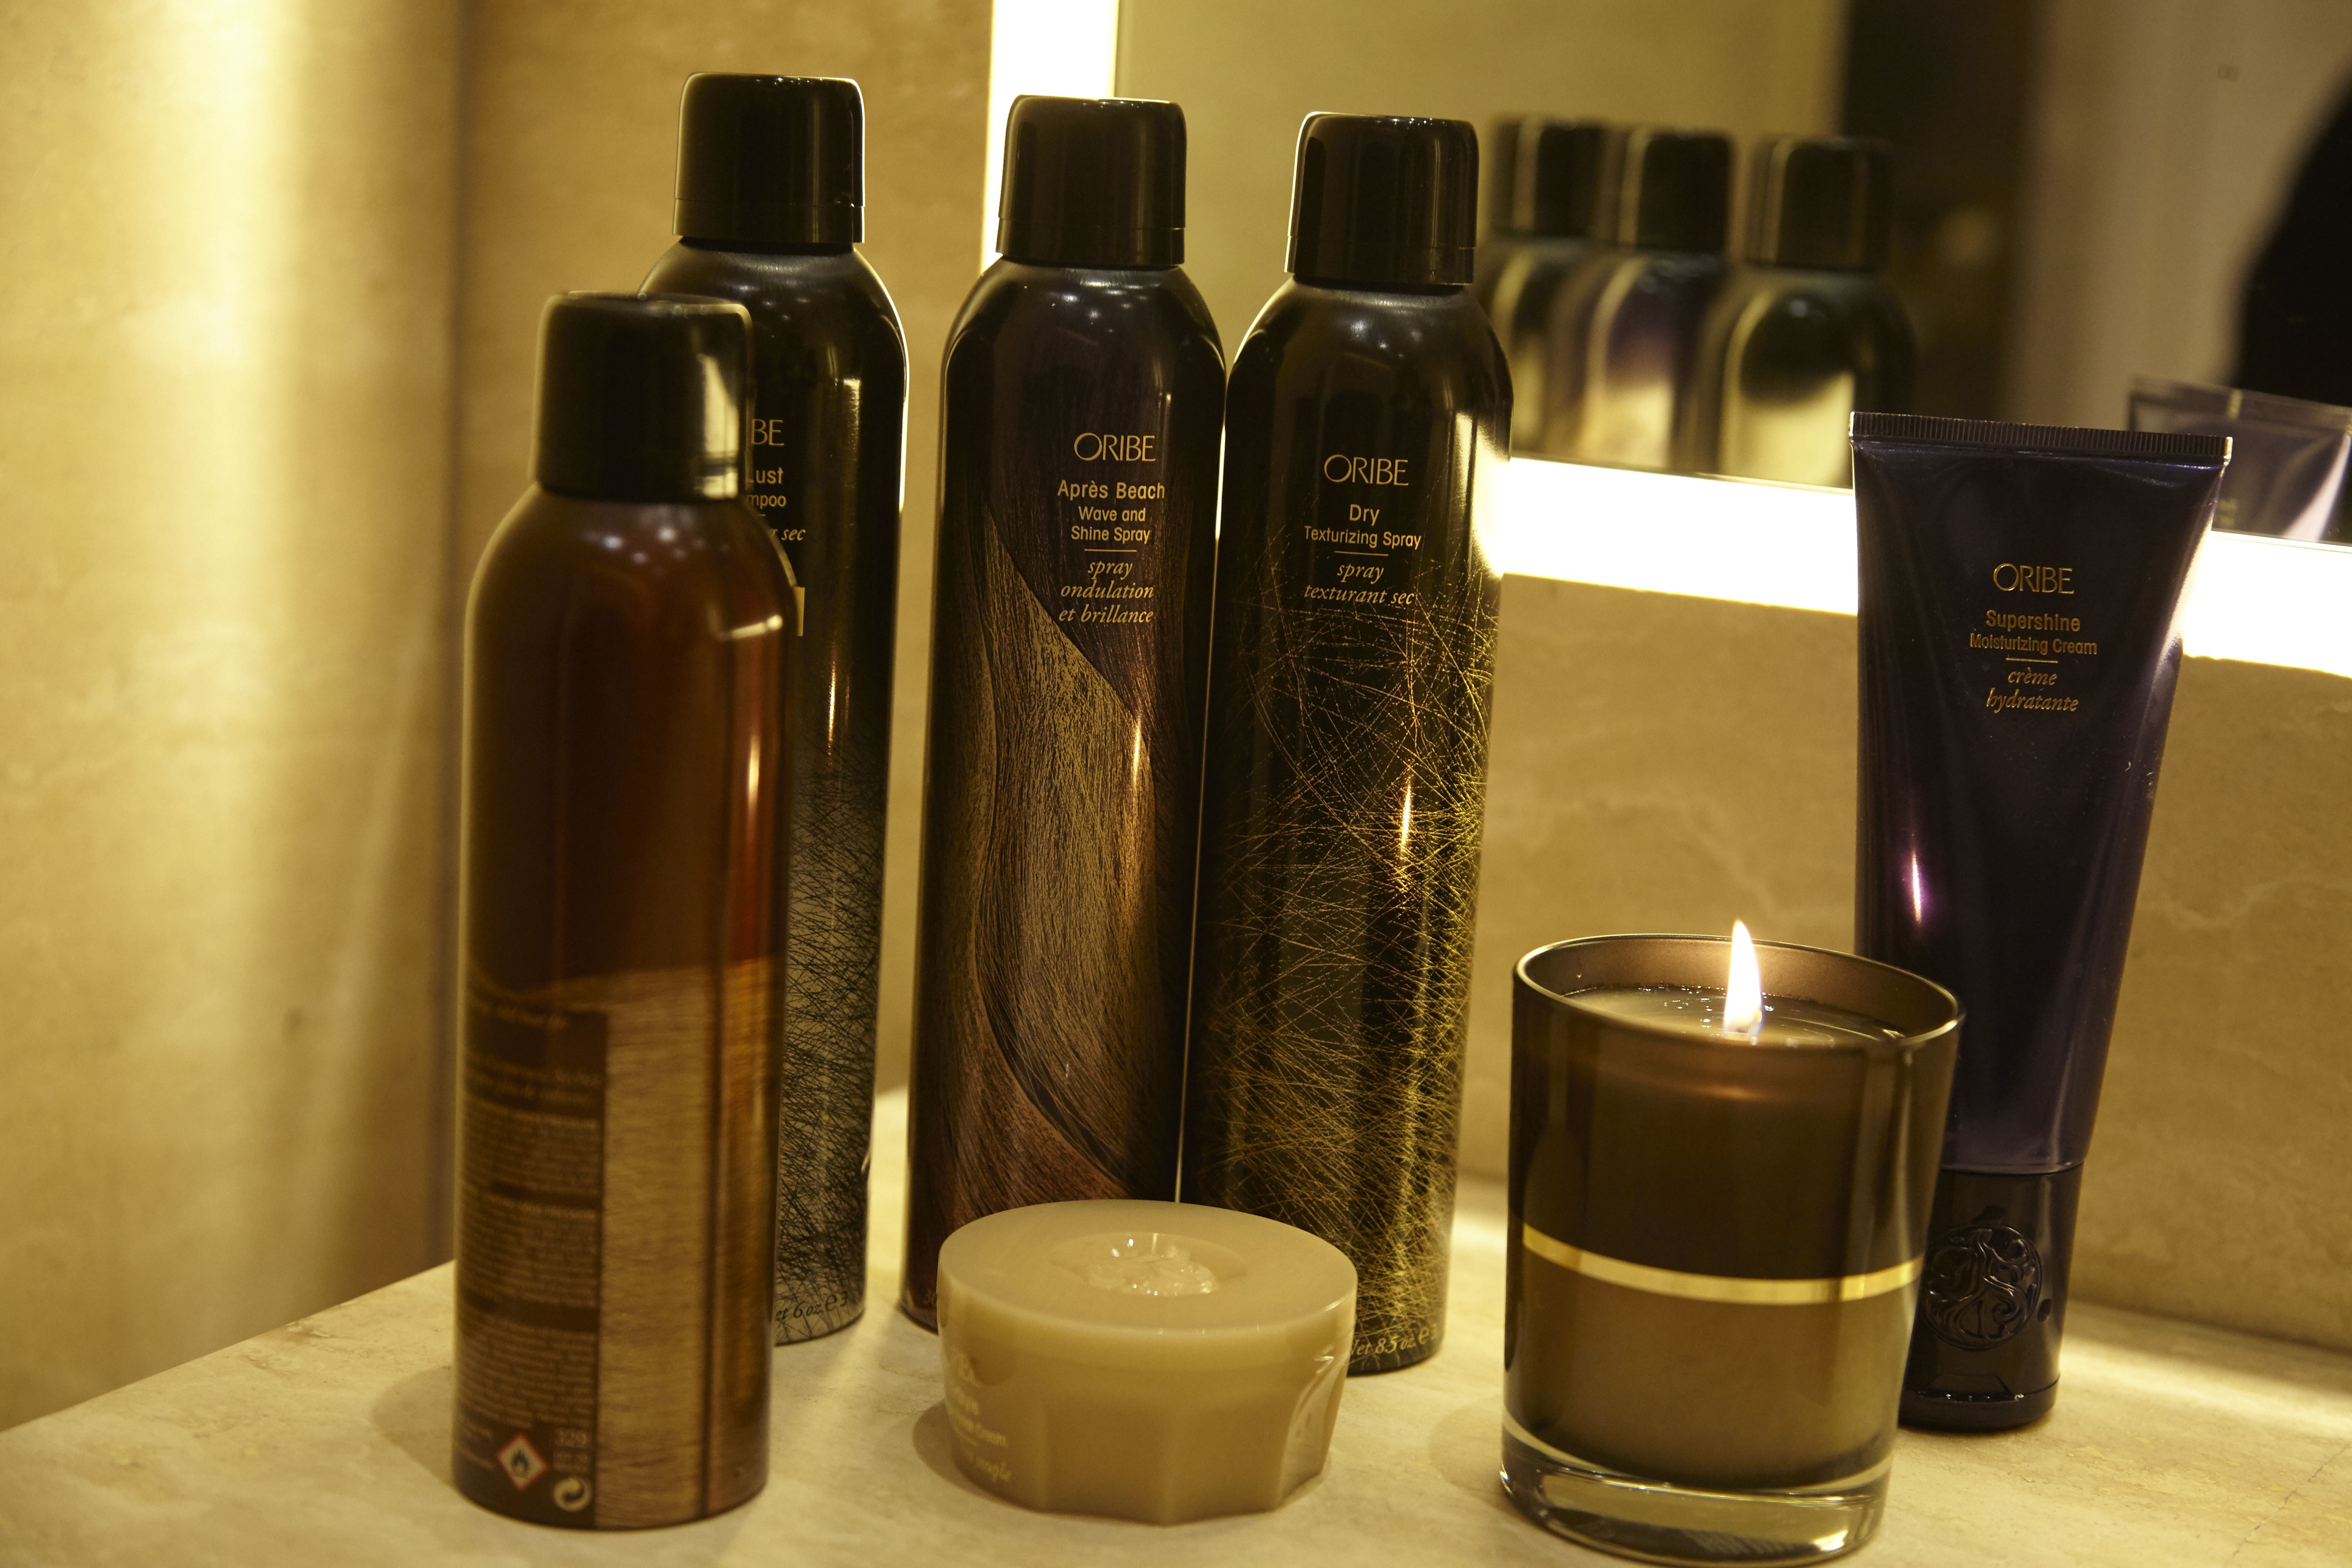 Oribe products.